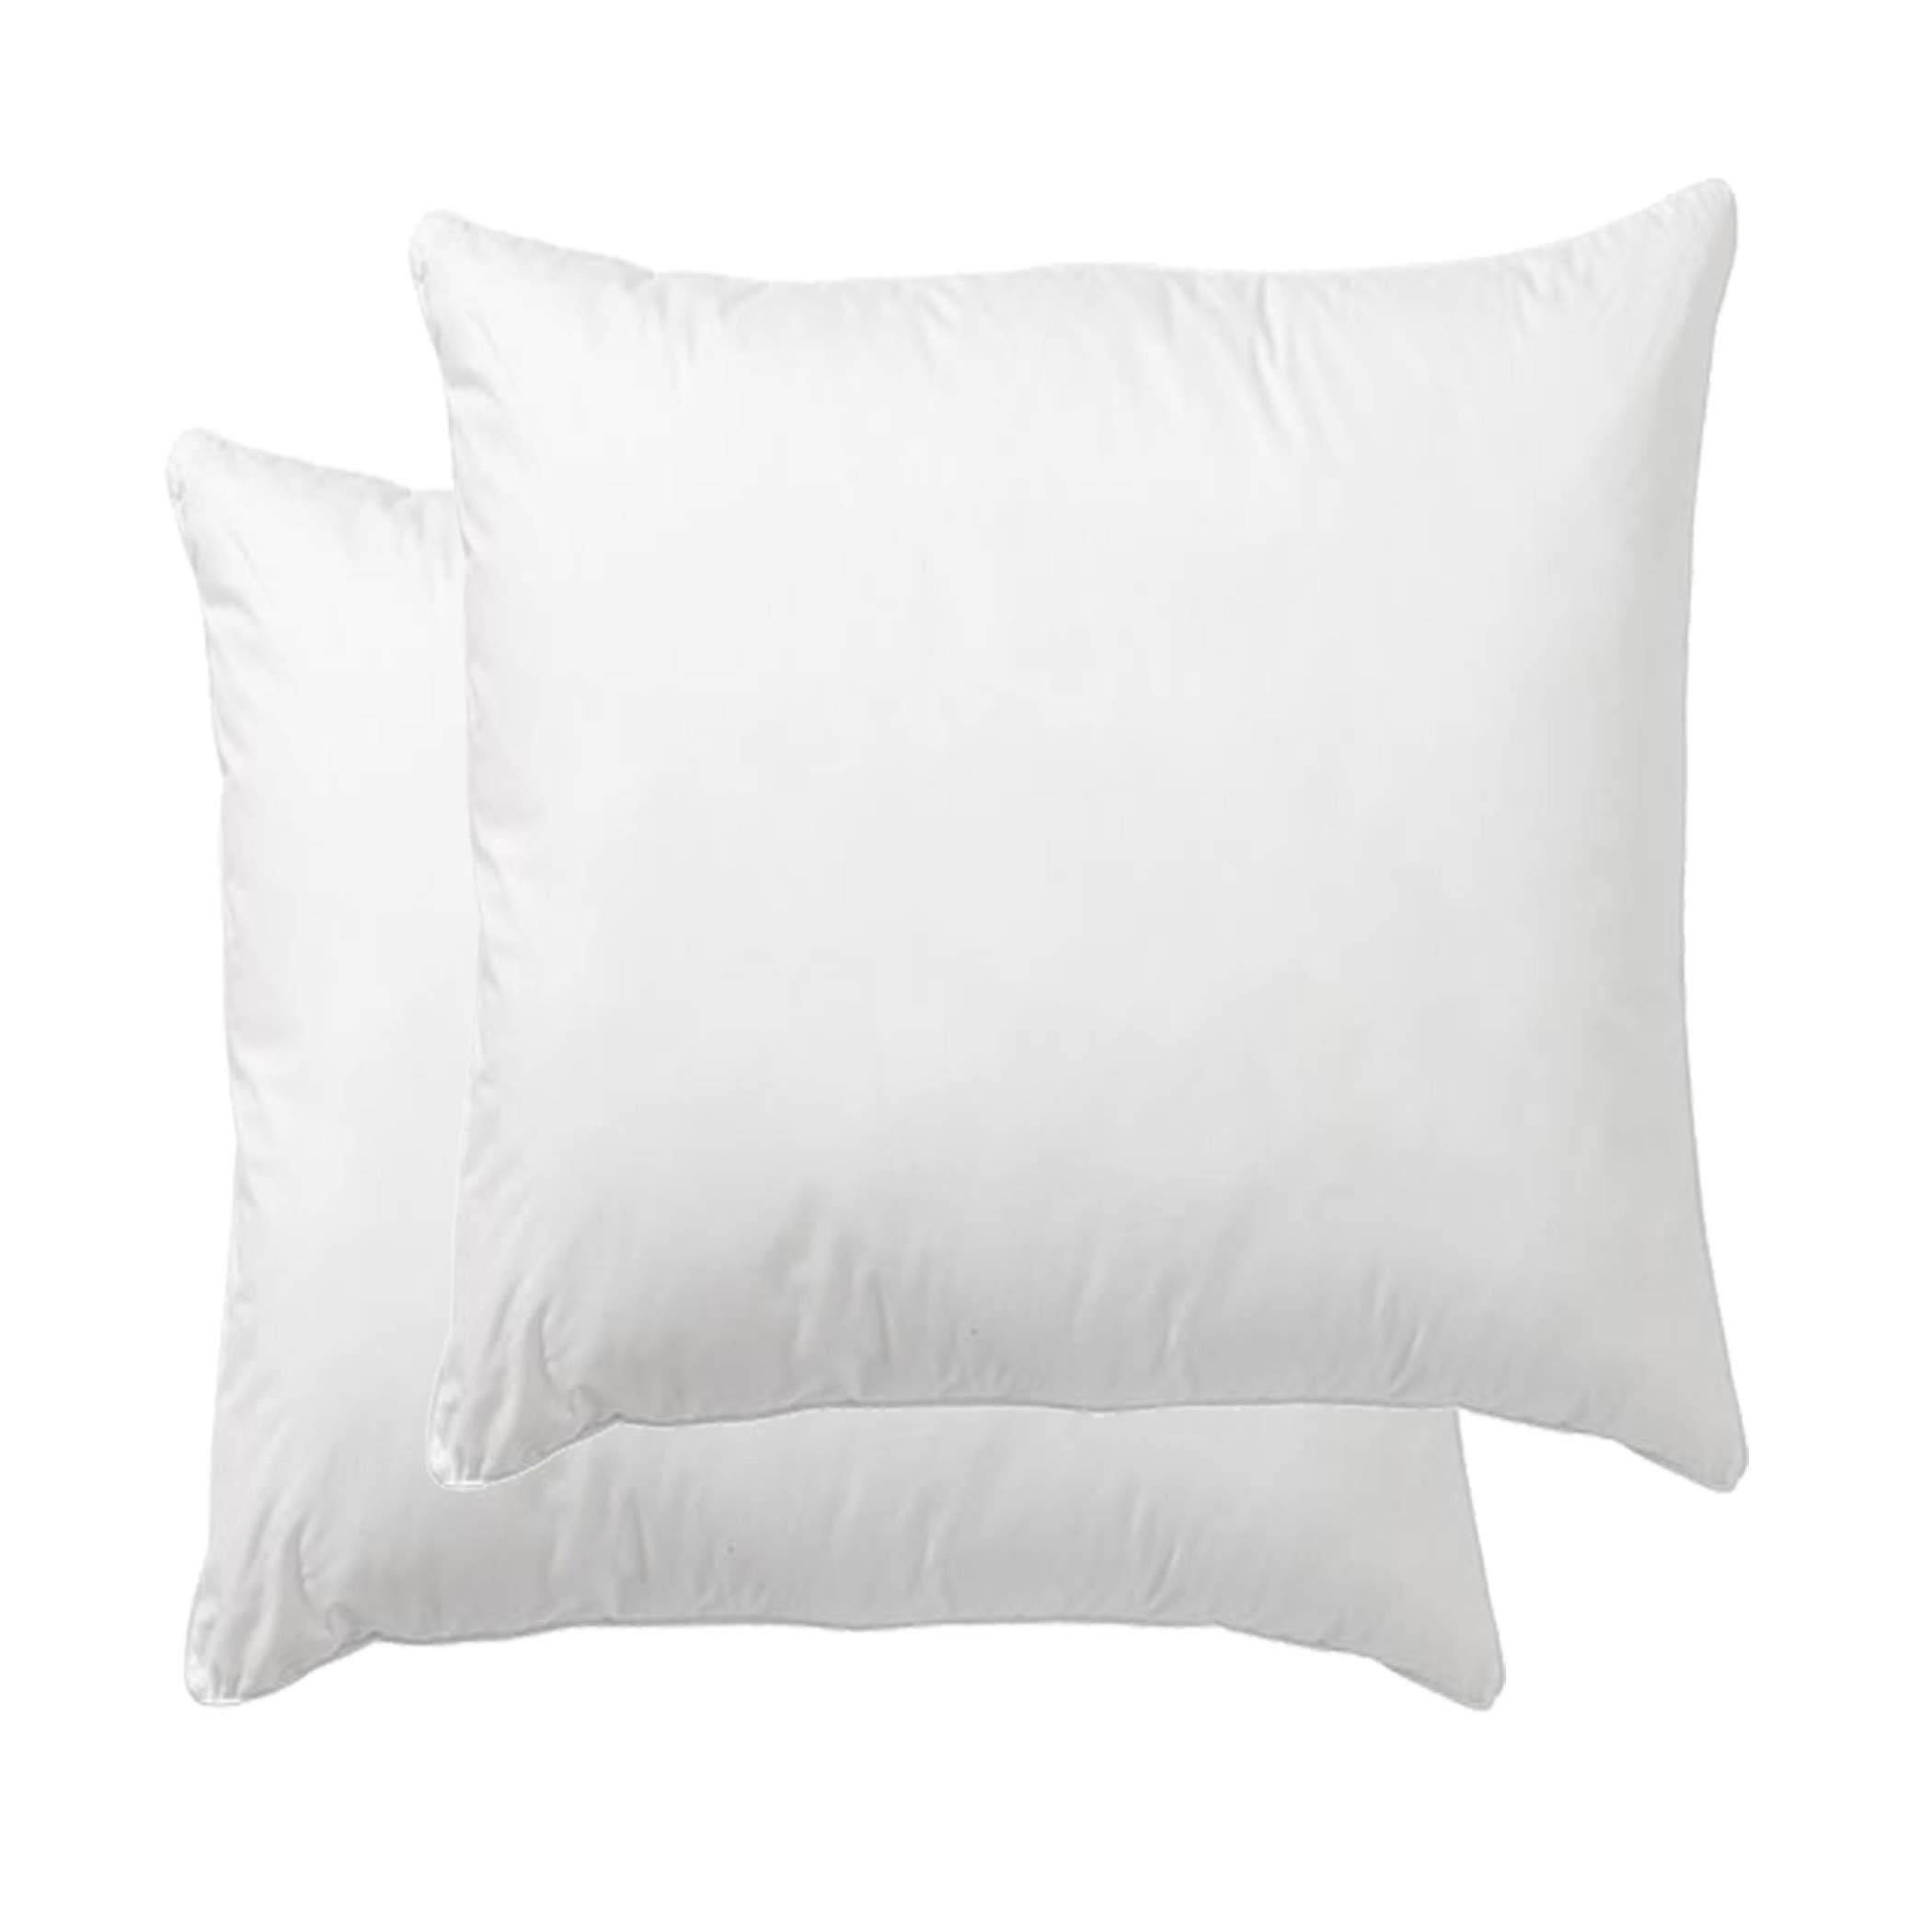 Danmitex Set of 2-18x18-Down Feather Throw Pillow Inserts-Cotton Fabric by Danmitex